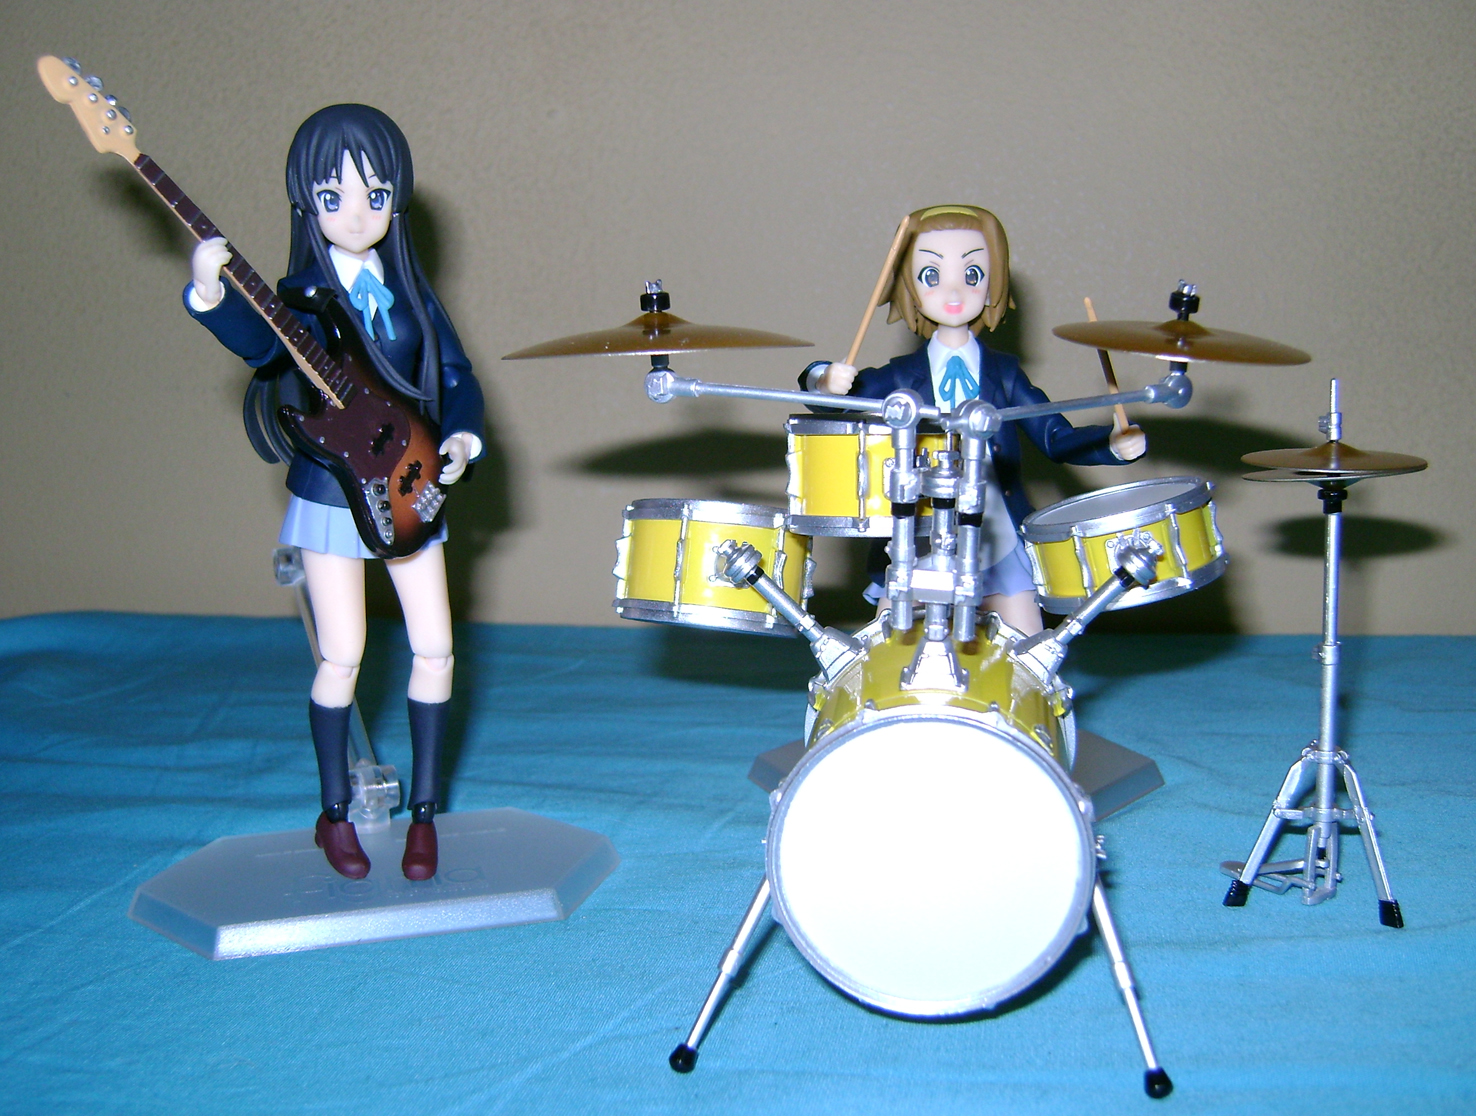 Keion F 9 K ON: Mio And Ritsu, Figma Action Figures!